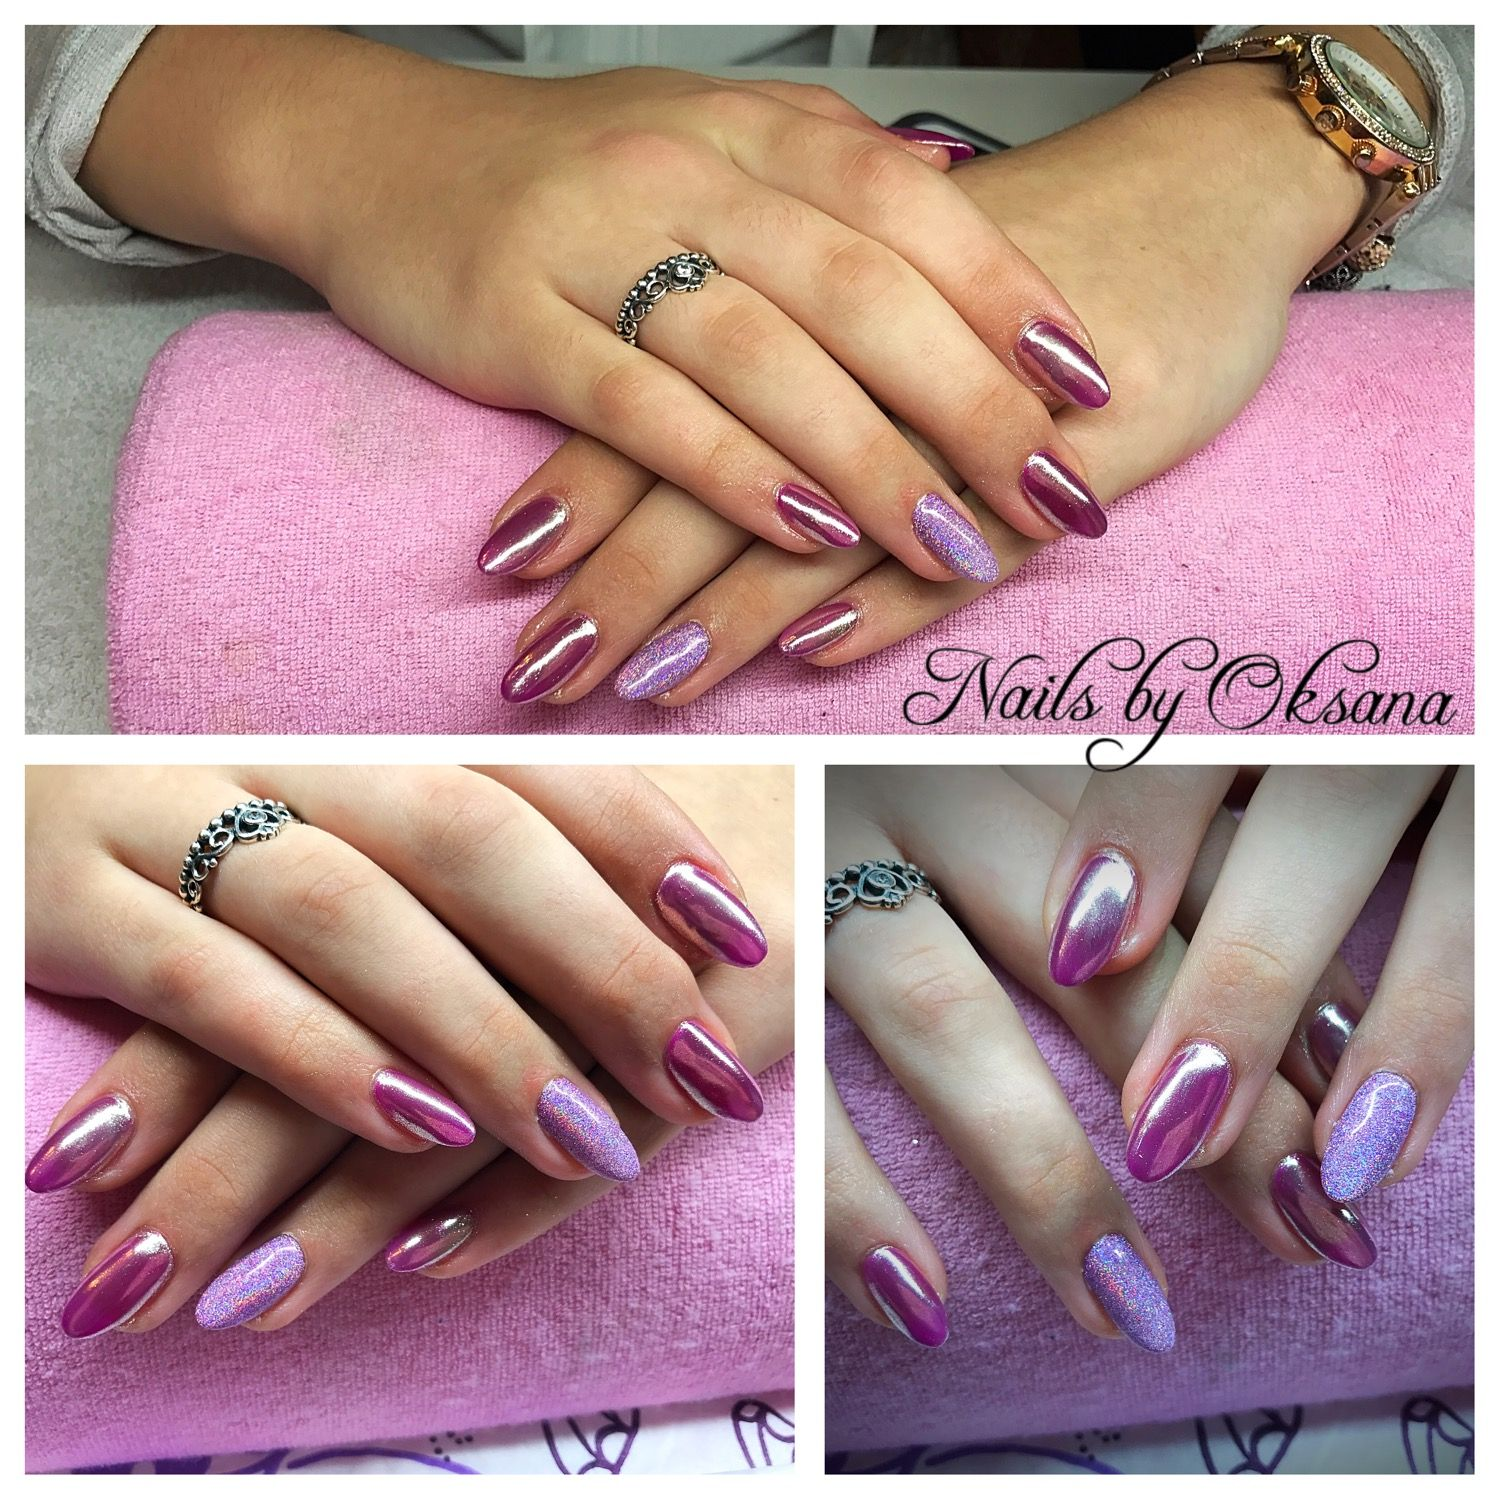 Gel nails extensions on forms plus Gelish, chrome And holo powder ...